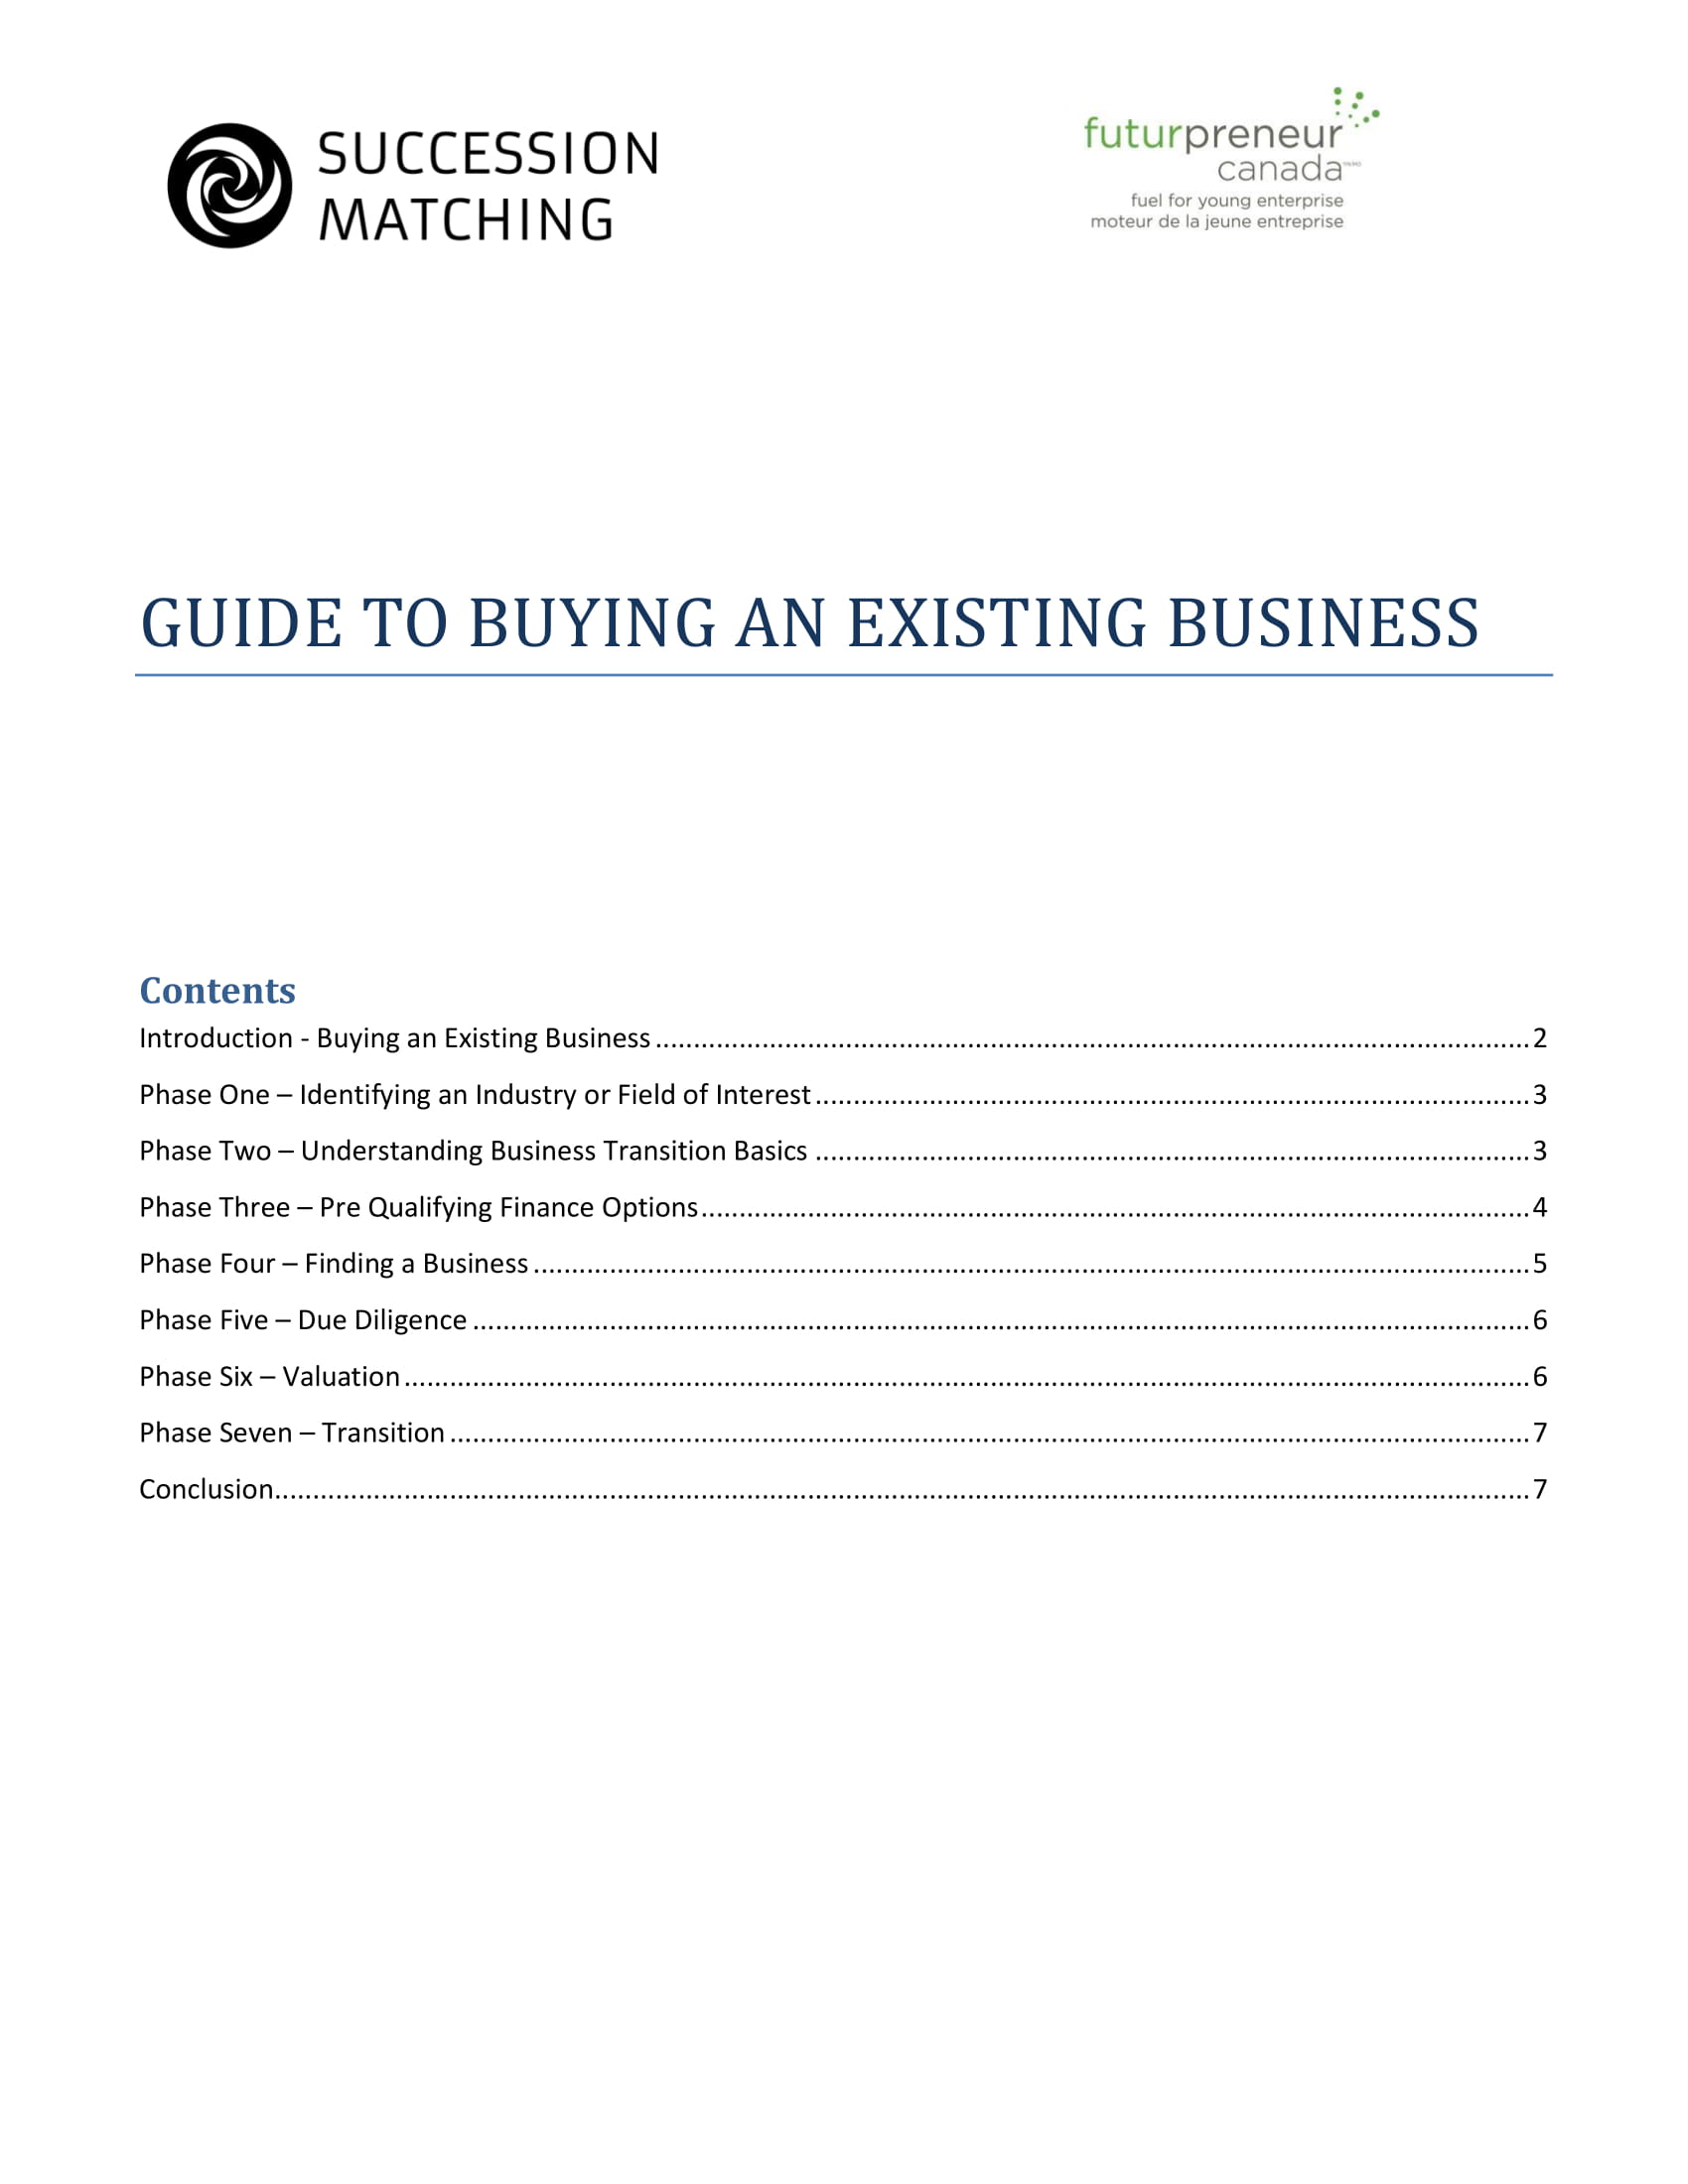 proposal for buying an existing business guide and example 1